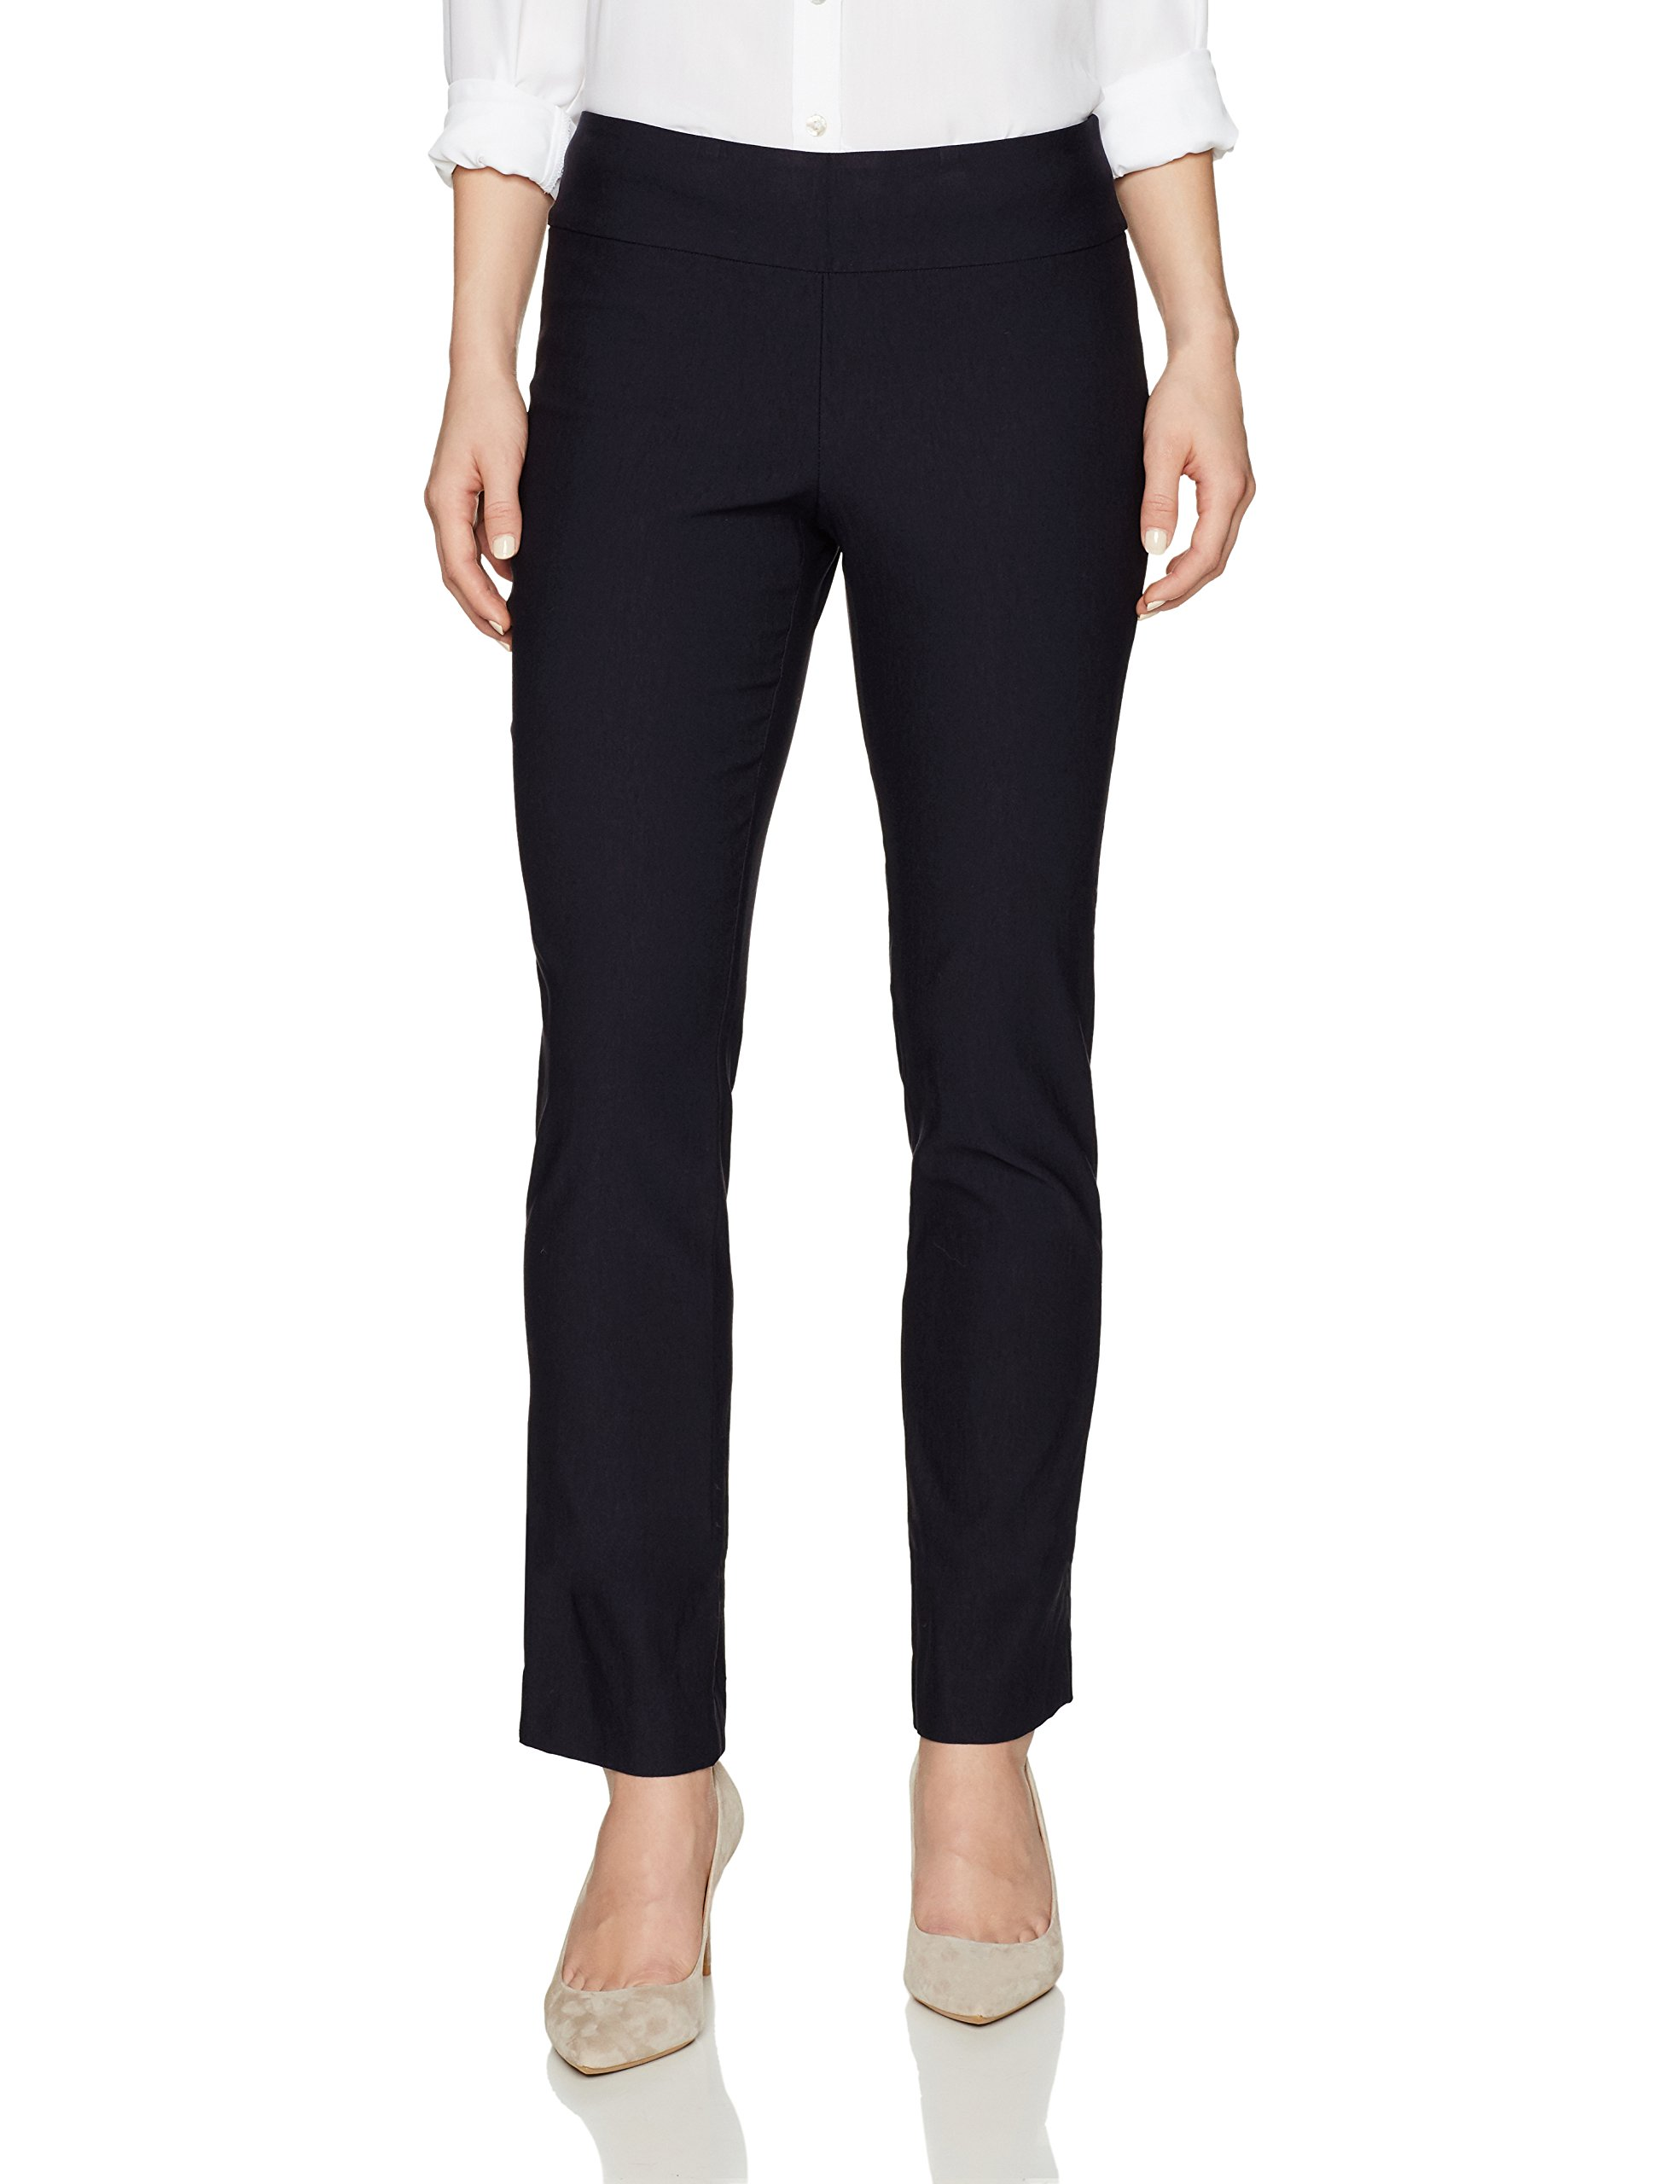 NIC+ZOE Women's Petite Wonderstretch Pant, Midnight, 4P